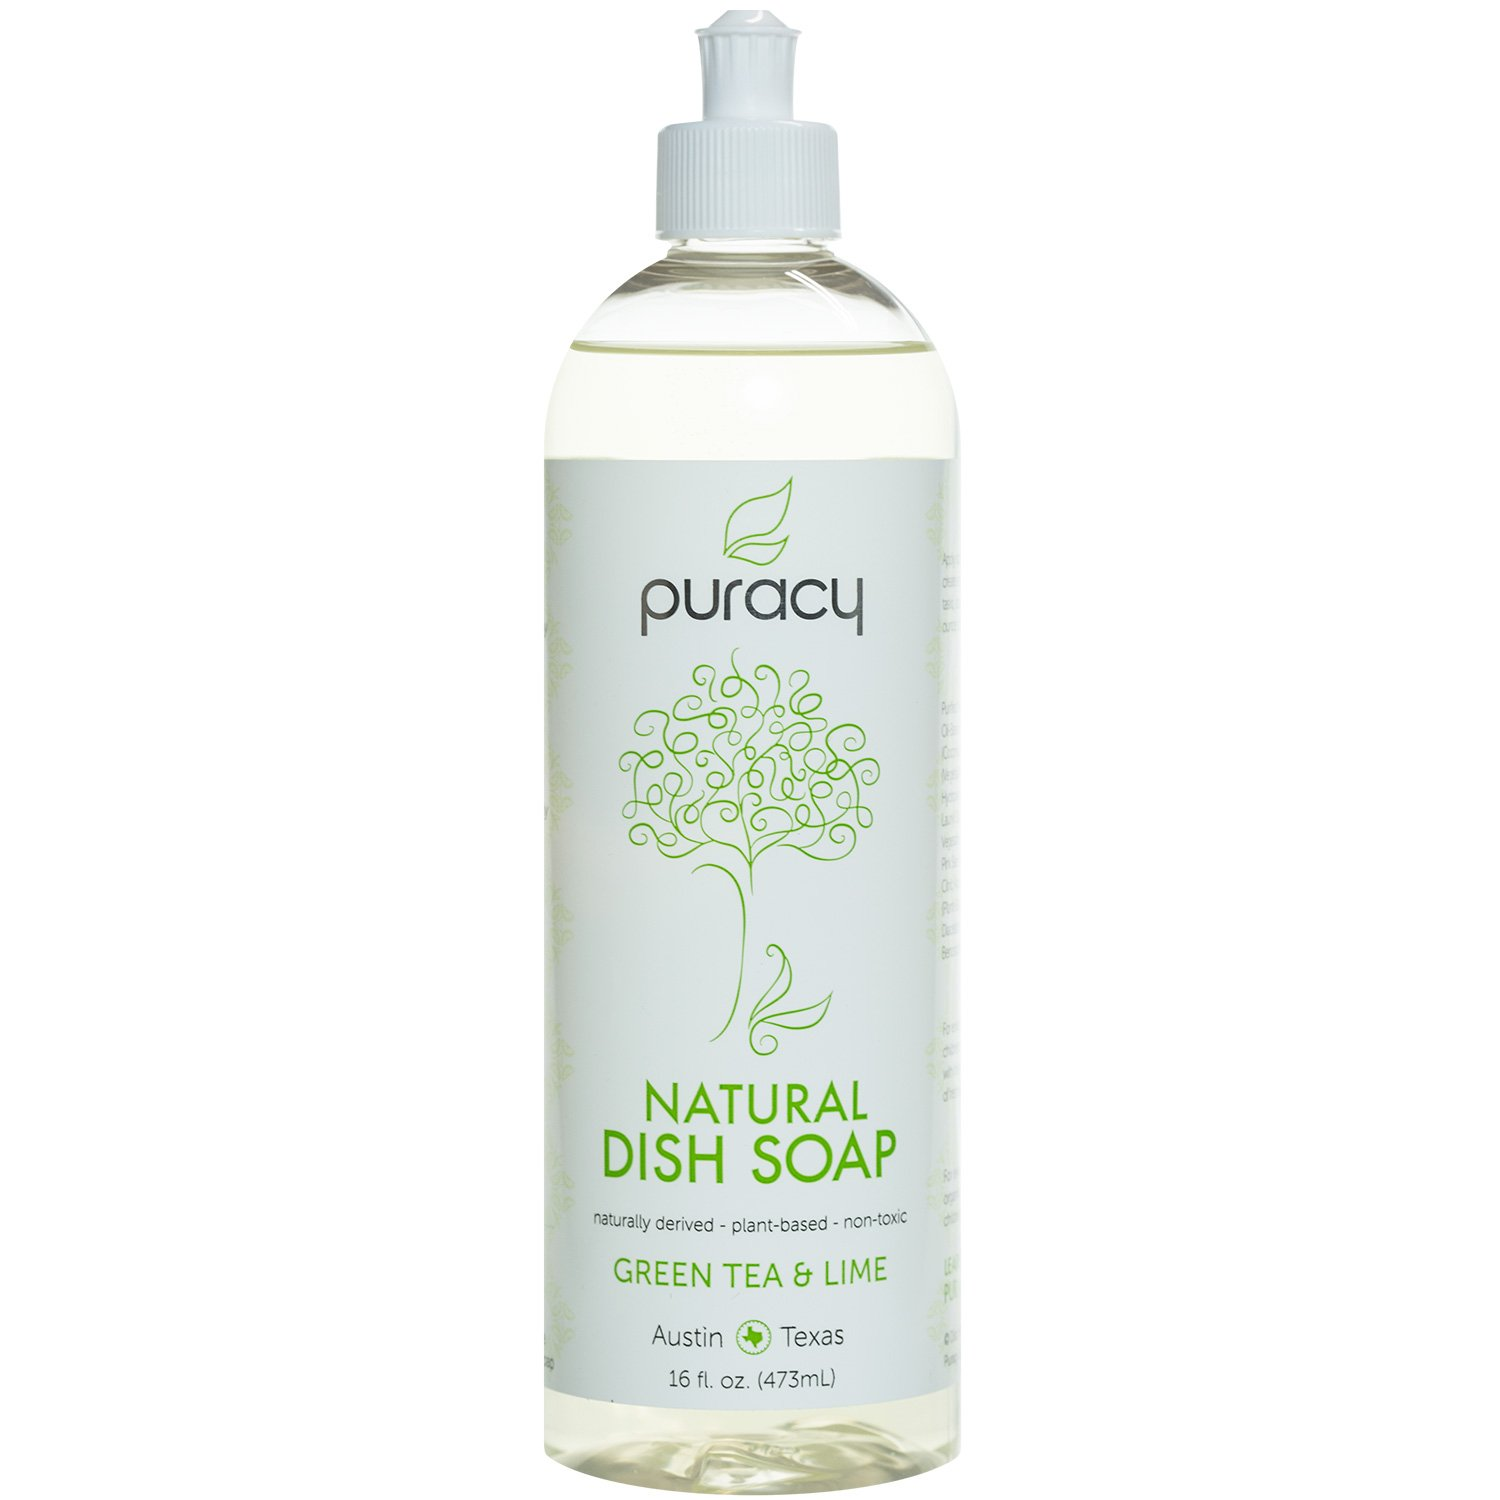 Puracy Natural Liquid Dish Soap, Sulfate-Free Dishwashing Detergent, Green Tea and Lime, 16 Ounce Bottle, (Pack of 3) PDS16-3